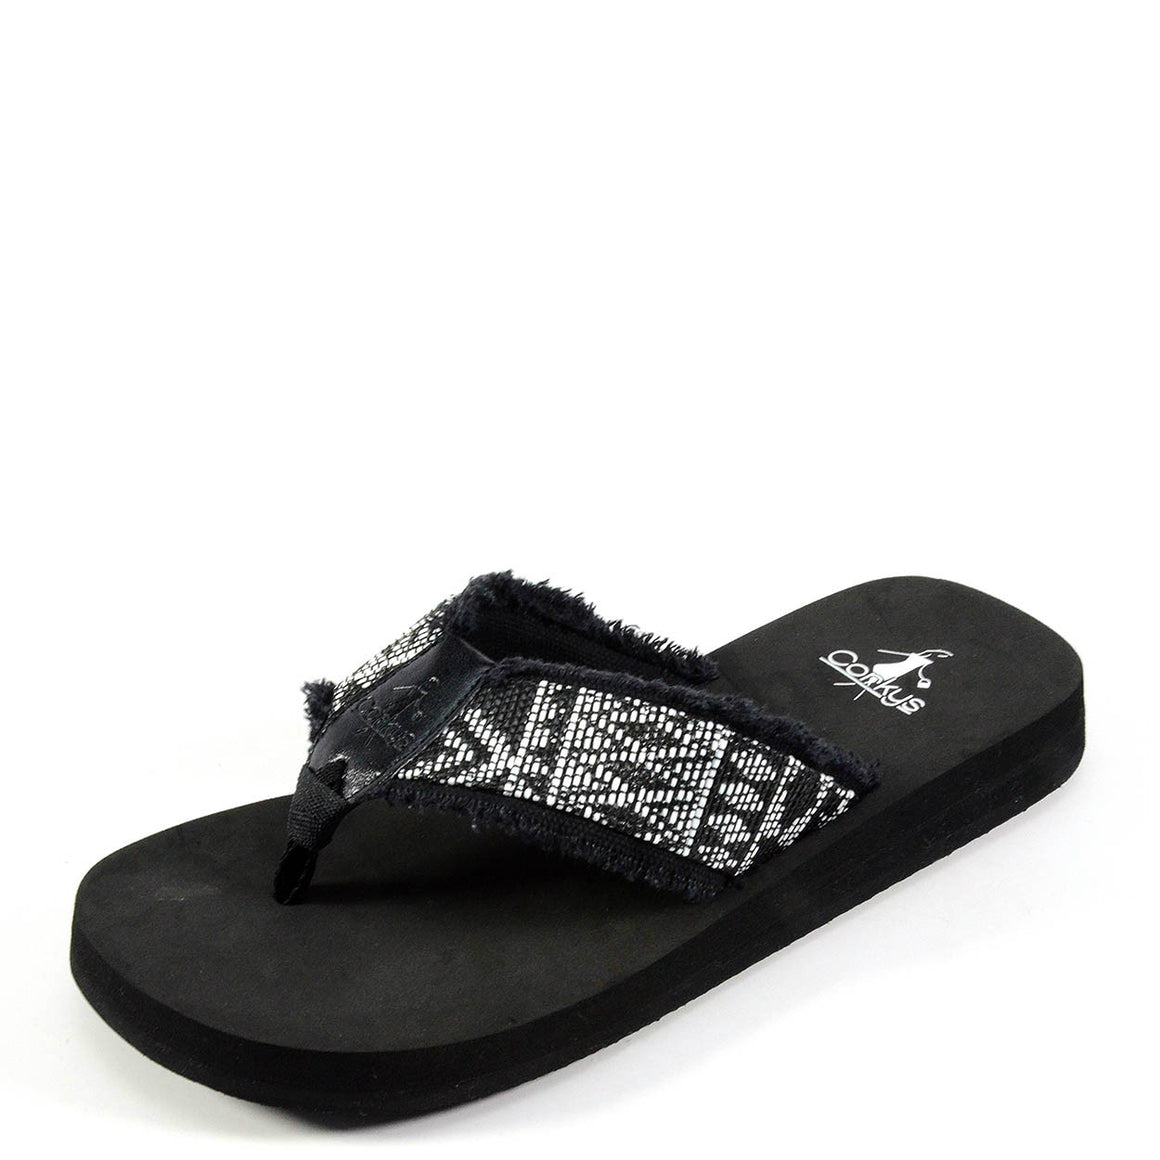 Corkys Women's Scallop Sandal - Black/White 20-8085 - ShoeShackOnline